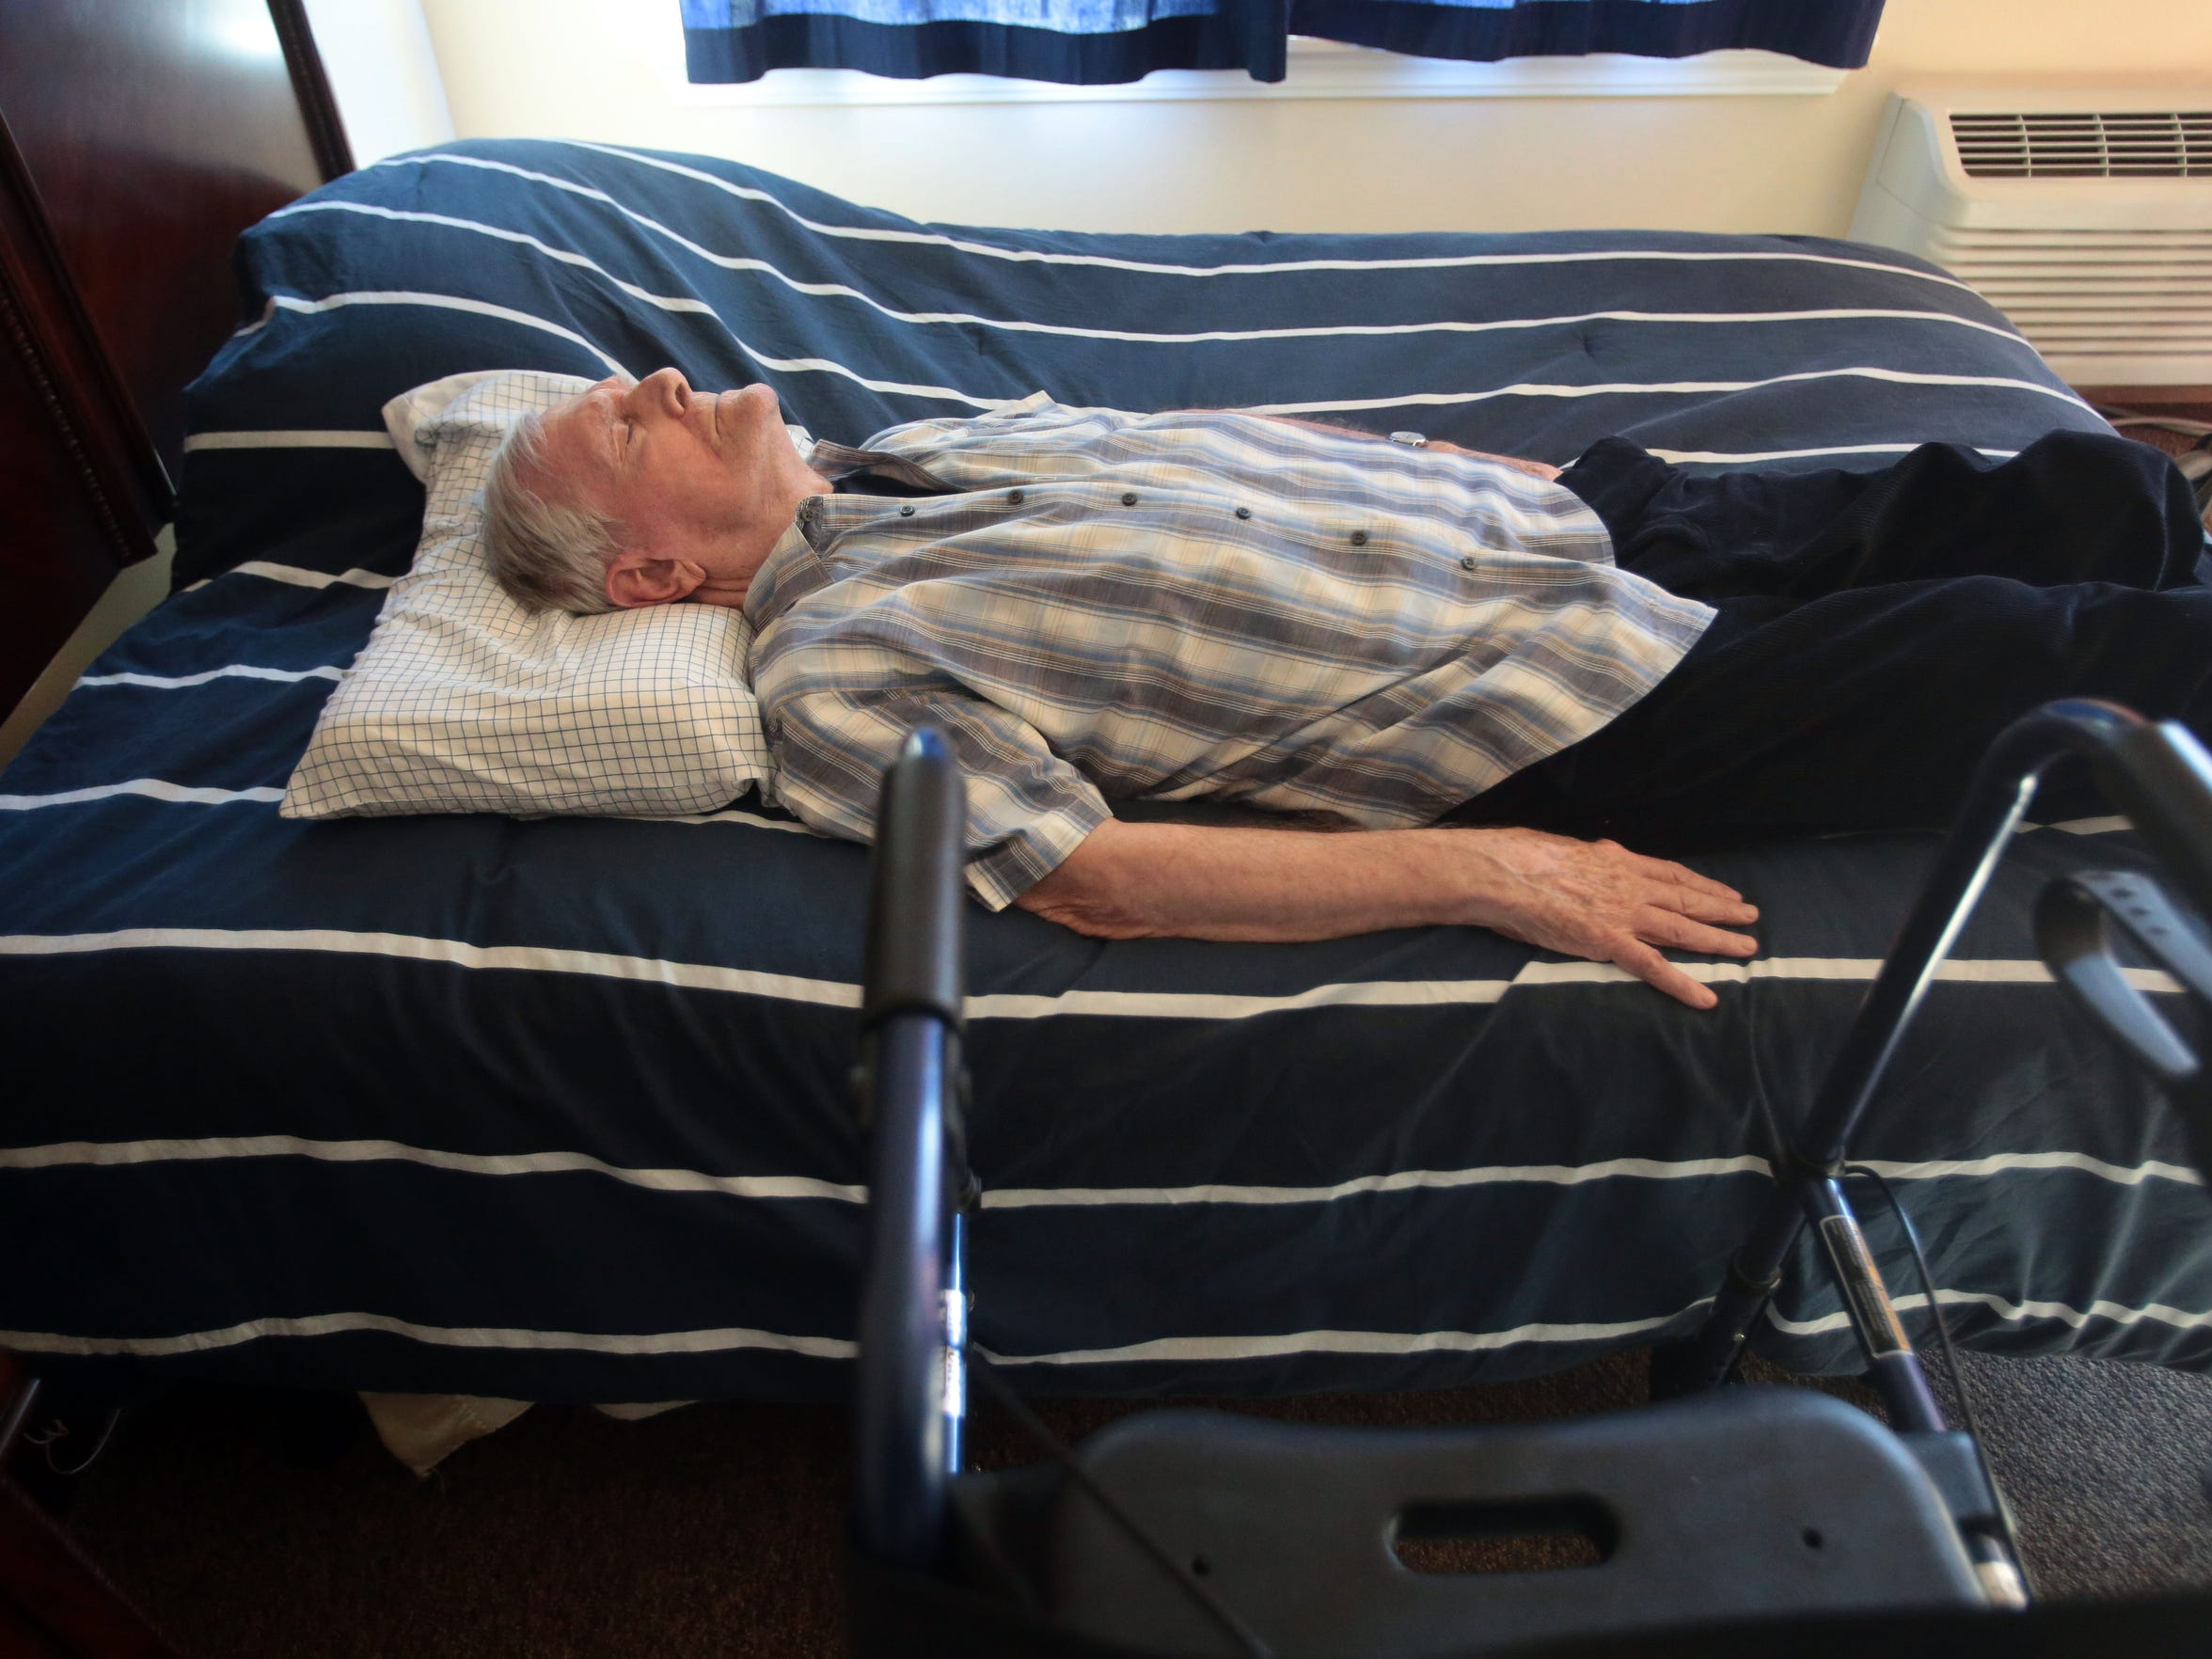 Bruce Lansbury, 86, a retired TV writer and producer is asleep in his room at Caleo Bay Alzheimer's Care Center in La Quinta on Tuesday, February 2, 2016.